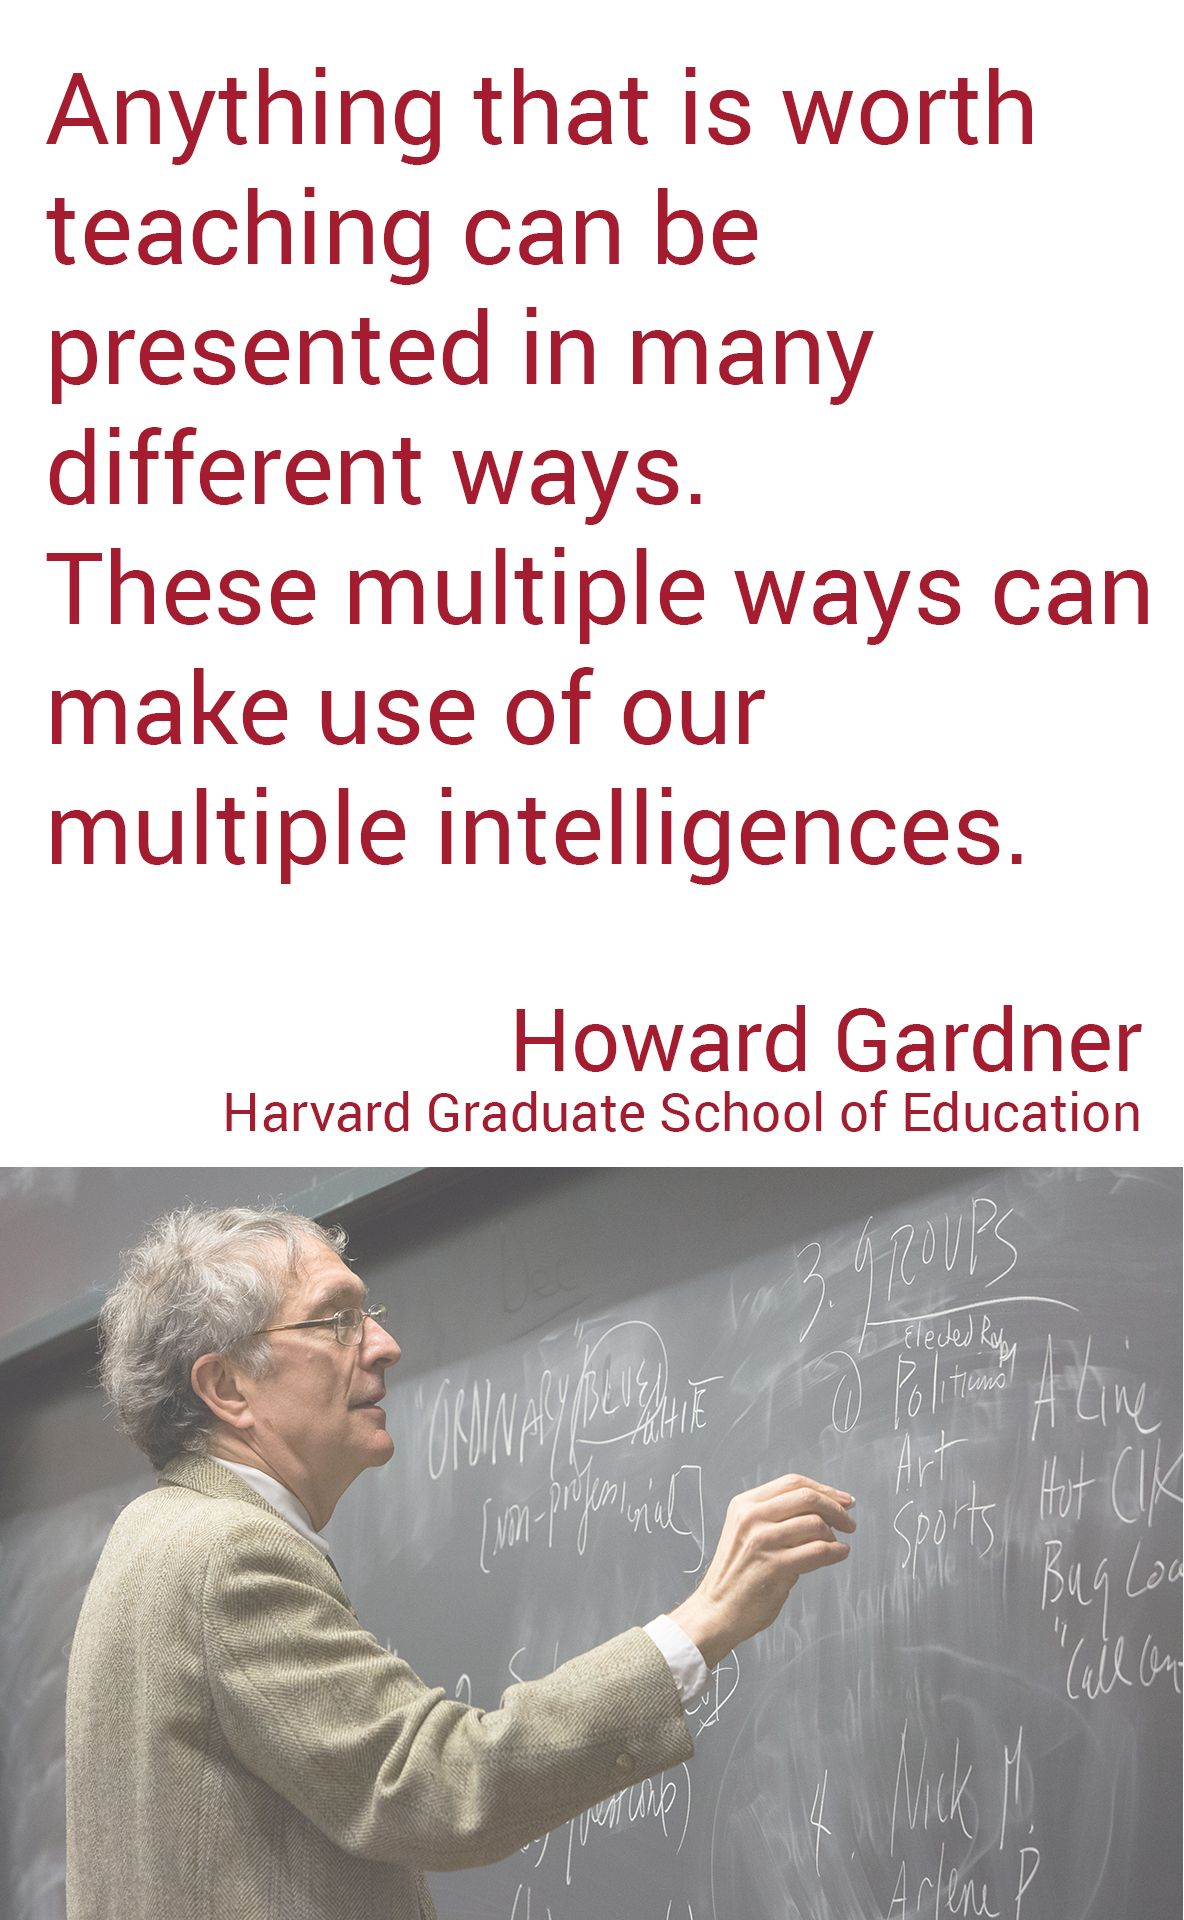 Howard Gardner, Harvard Graduate School of Education